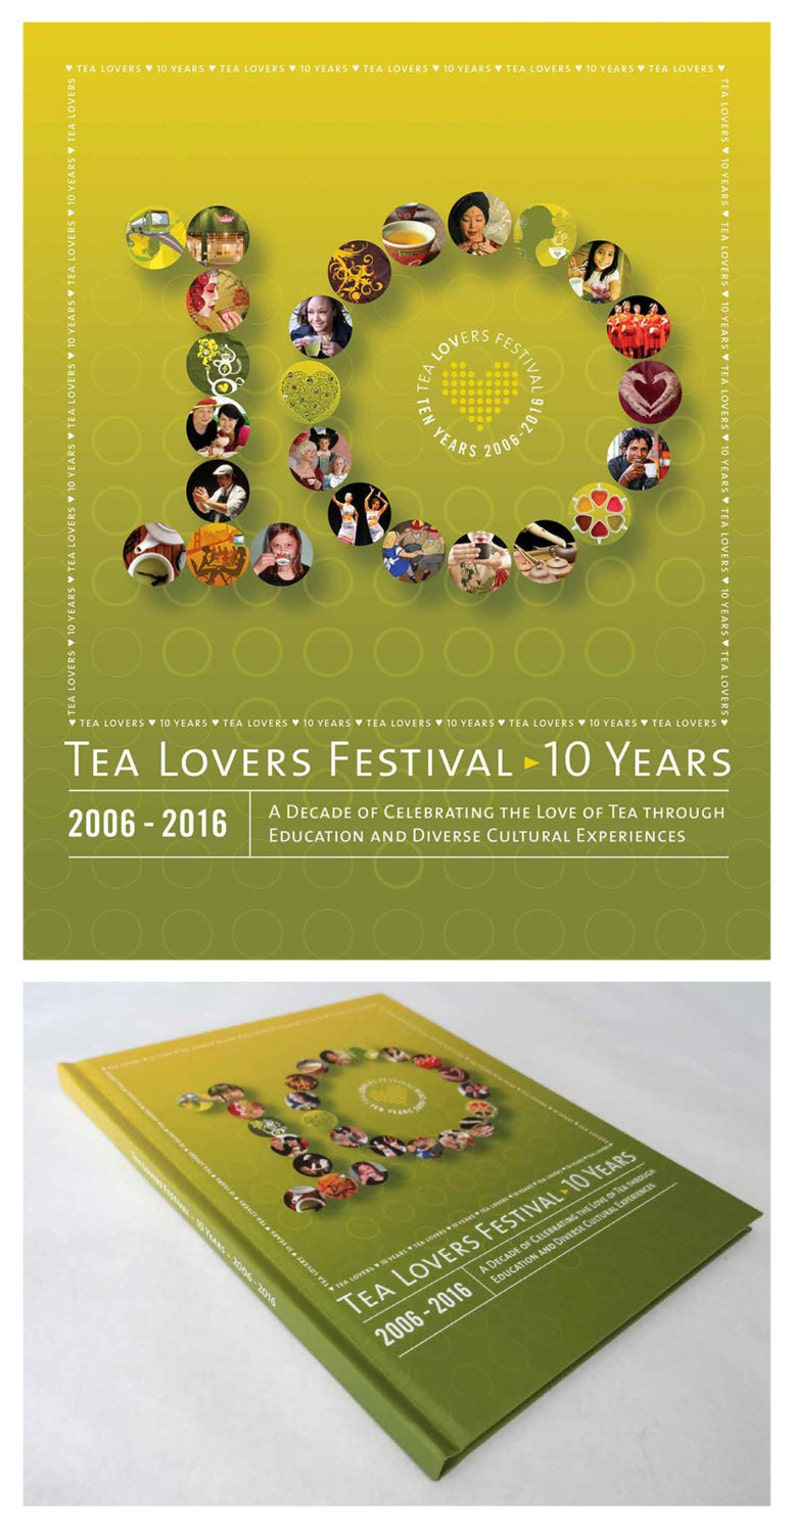 Tea Lovers Festival: 10 Years  Hard Cover Version image 0